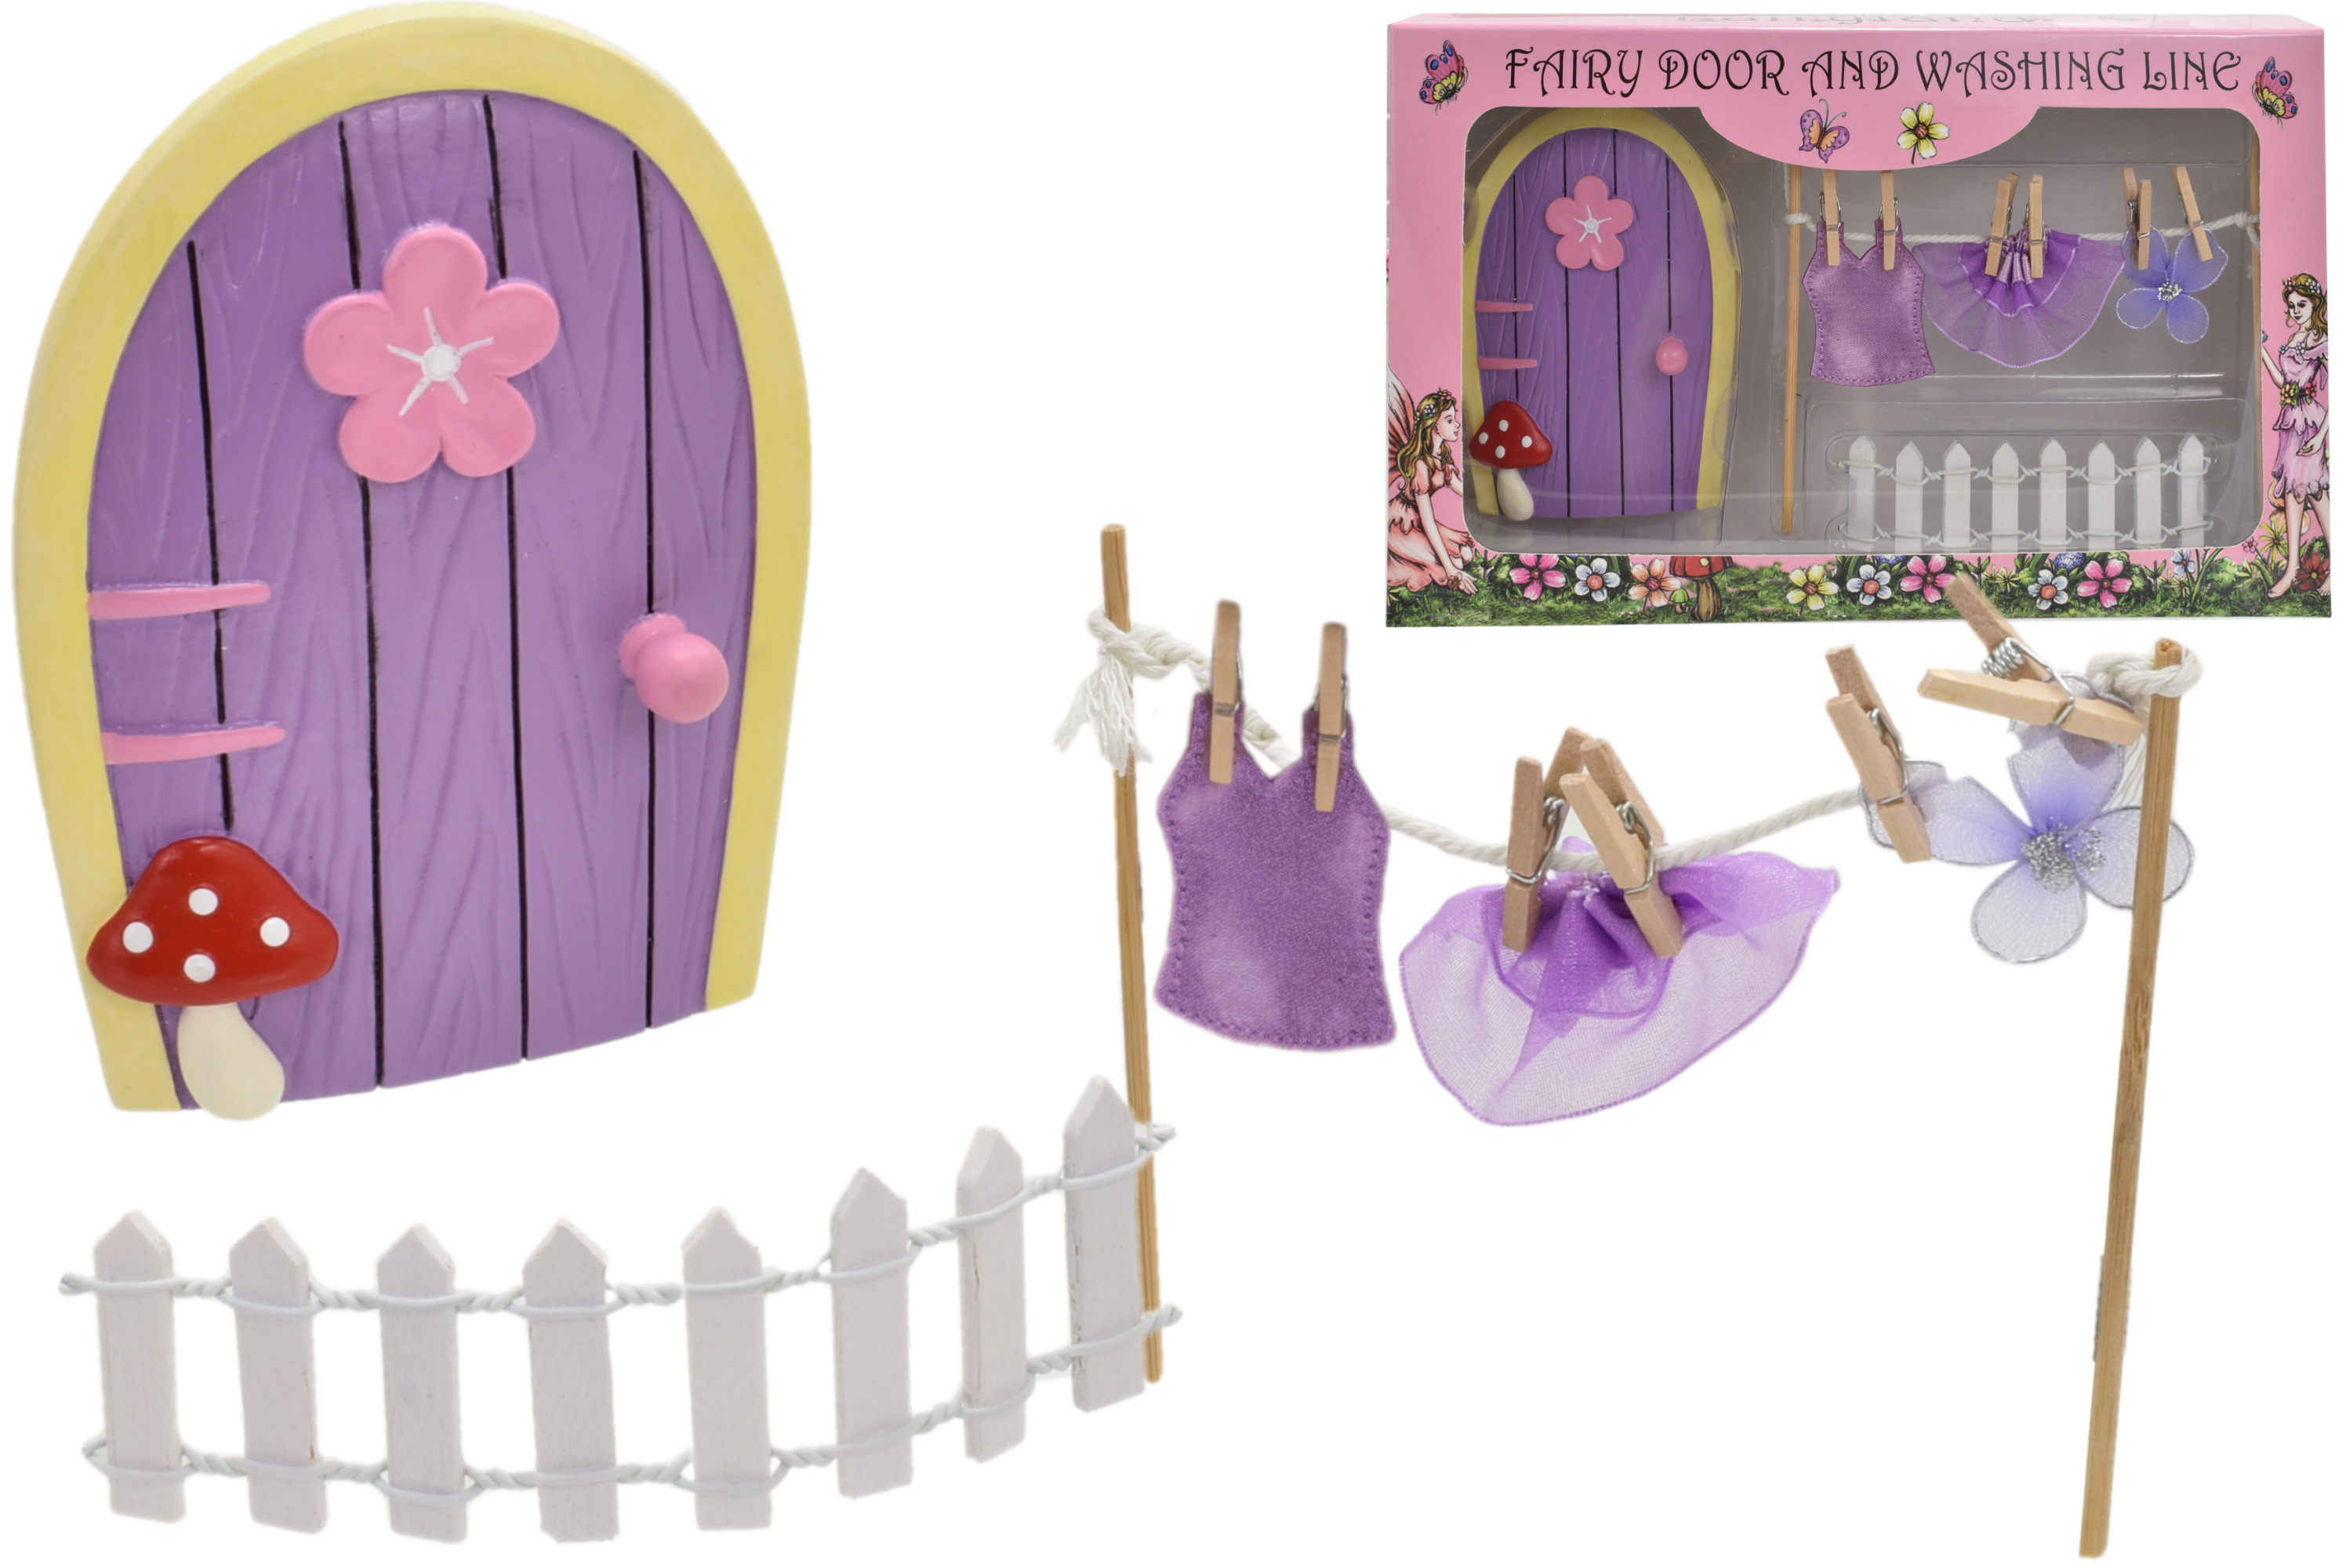 Fairyland Door Set With Washing Line In Window Box